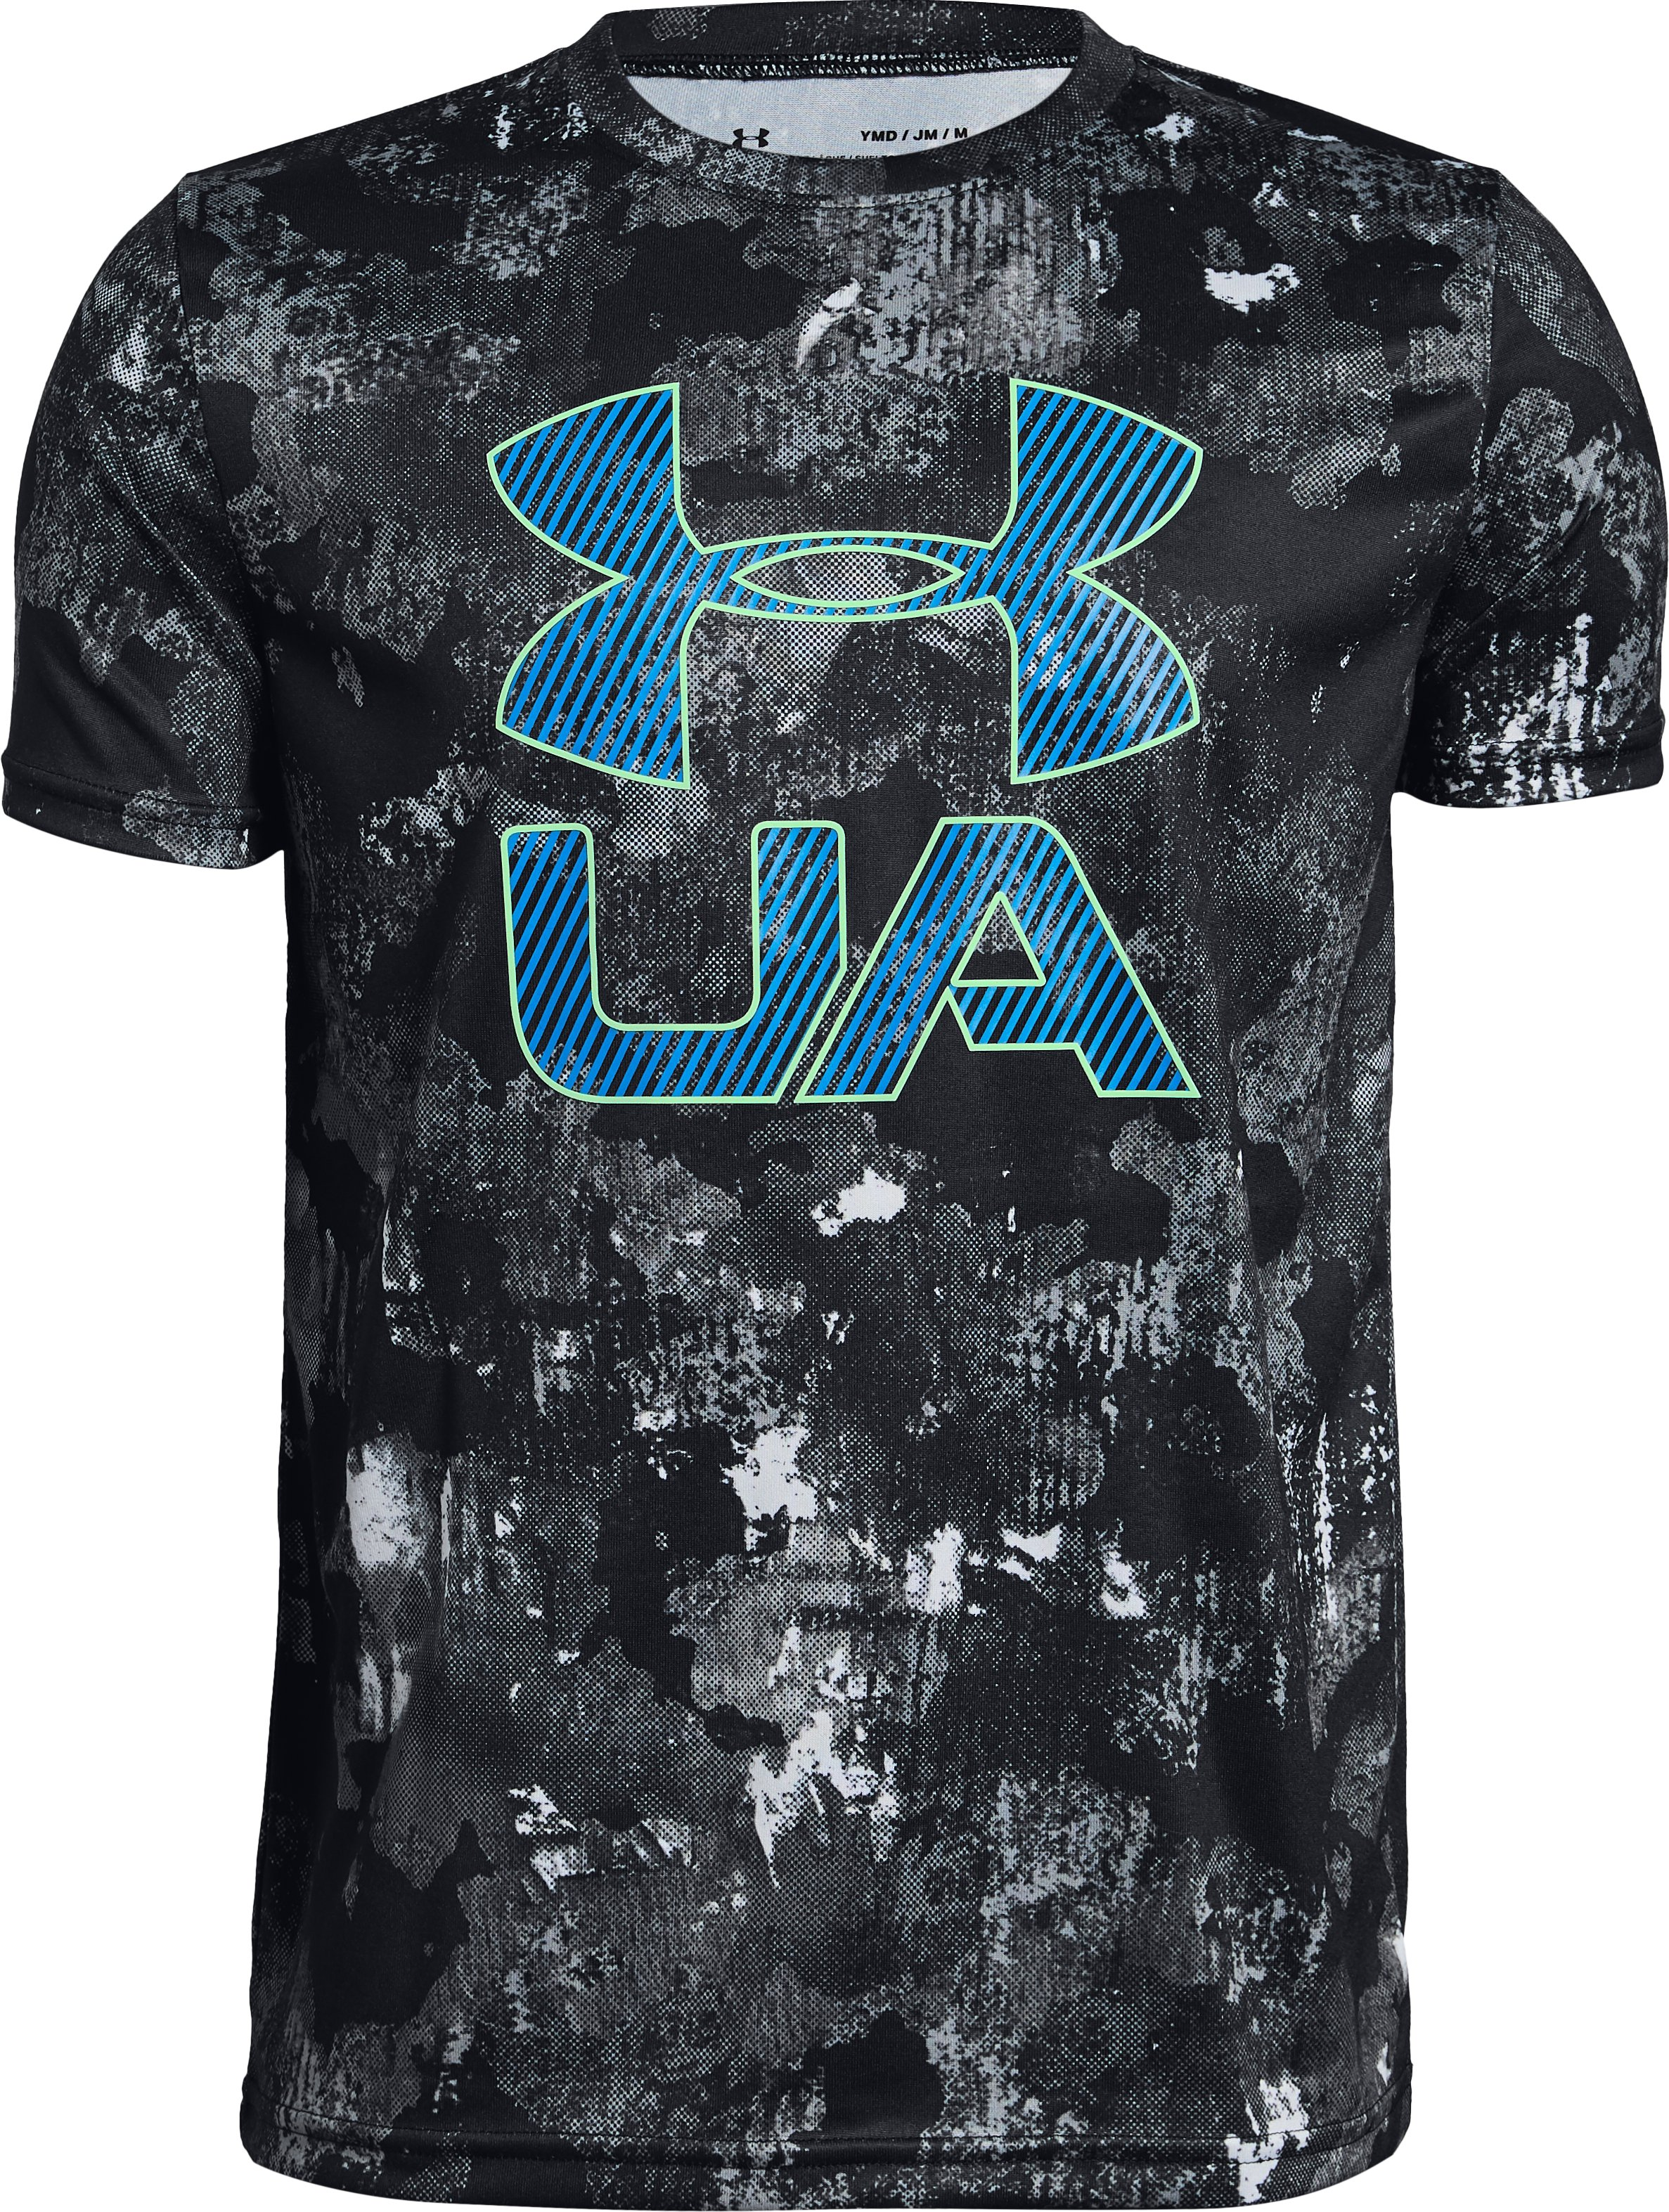 Boys' UA Printed Crossfade Short Sleeve T-Shirt, Black